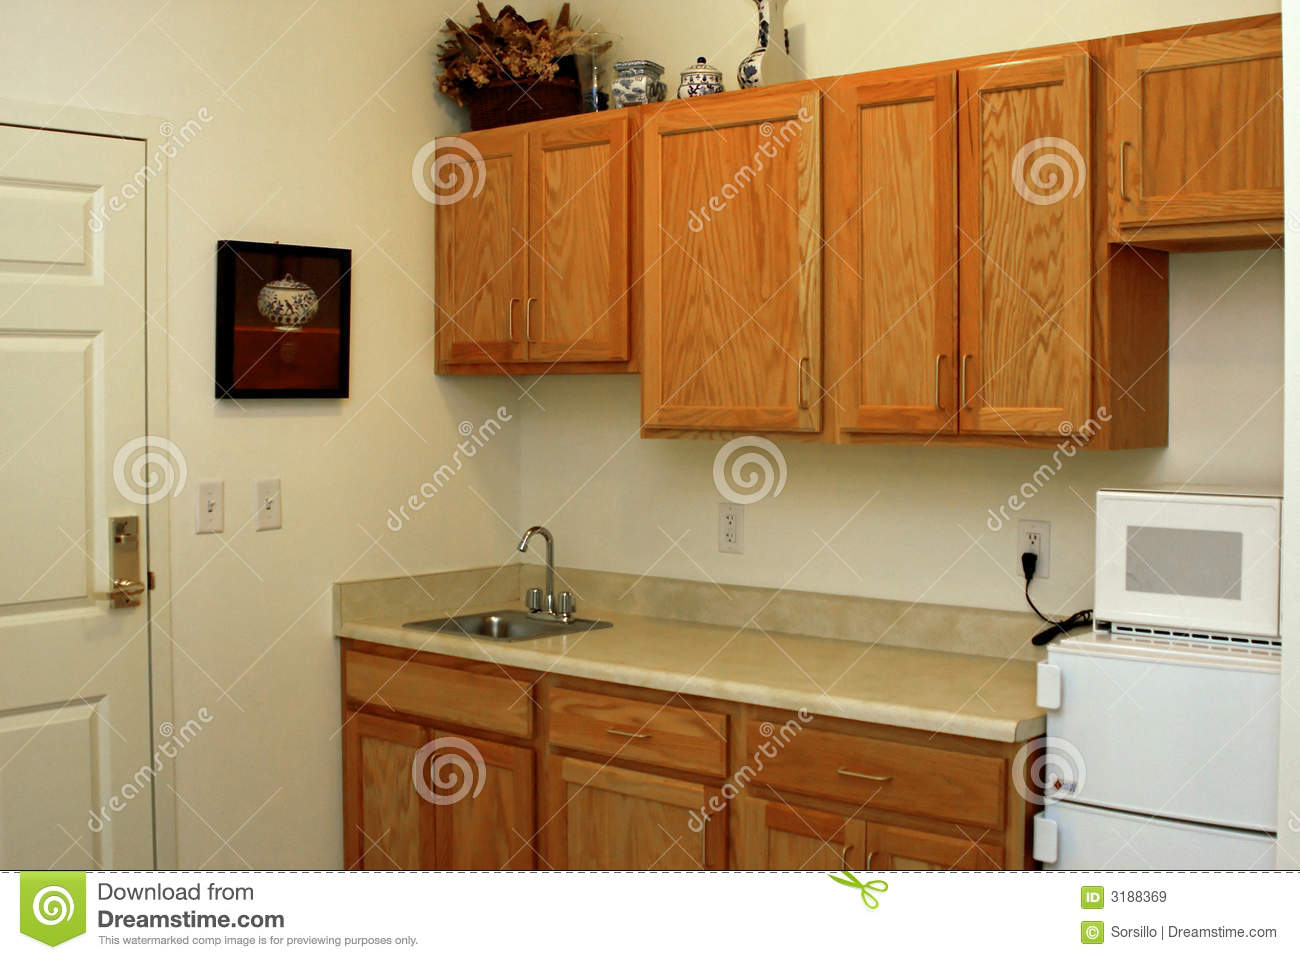 apartment kitchen royalty free stock images image 3188369